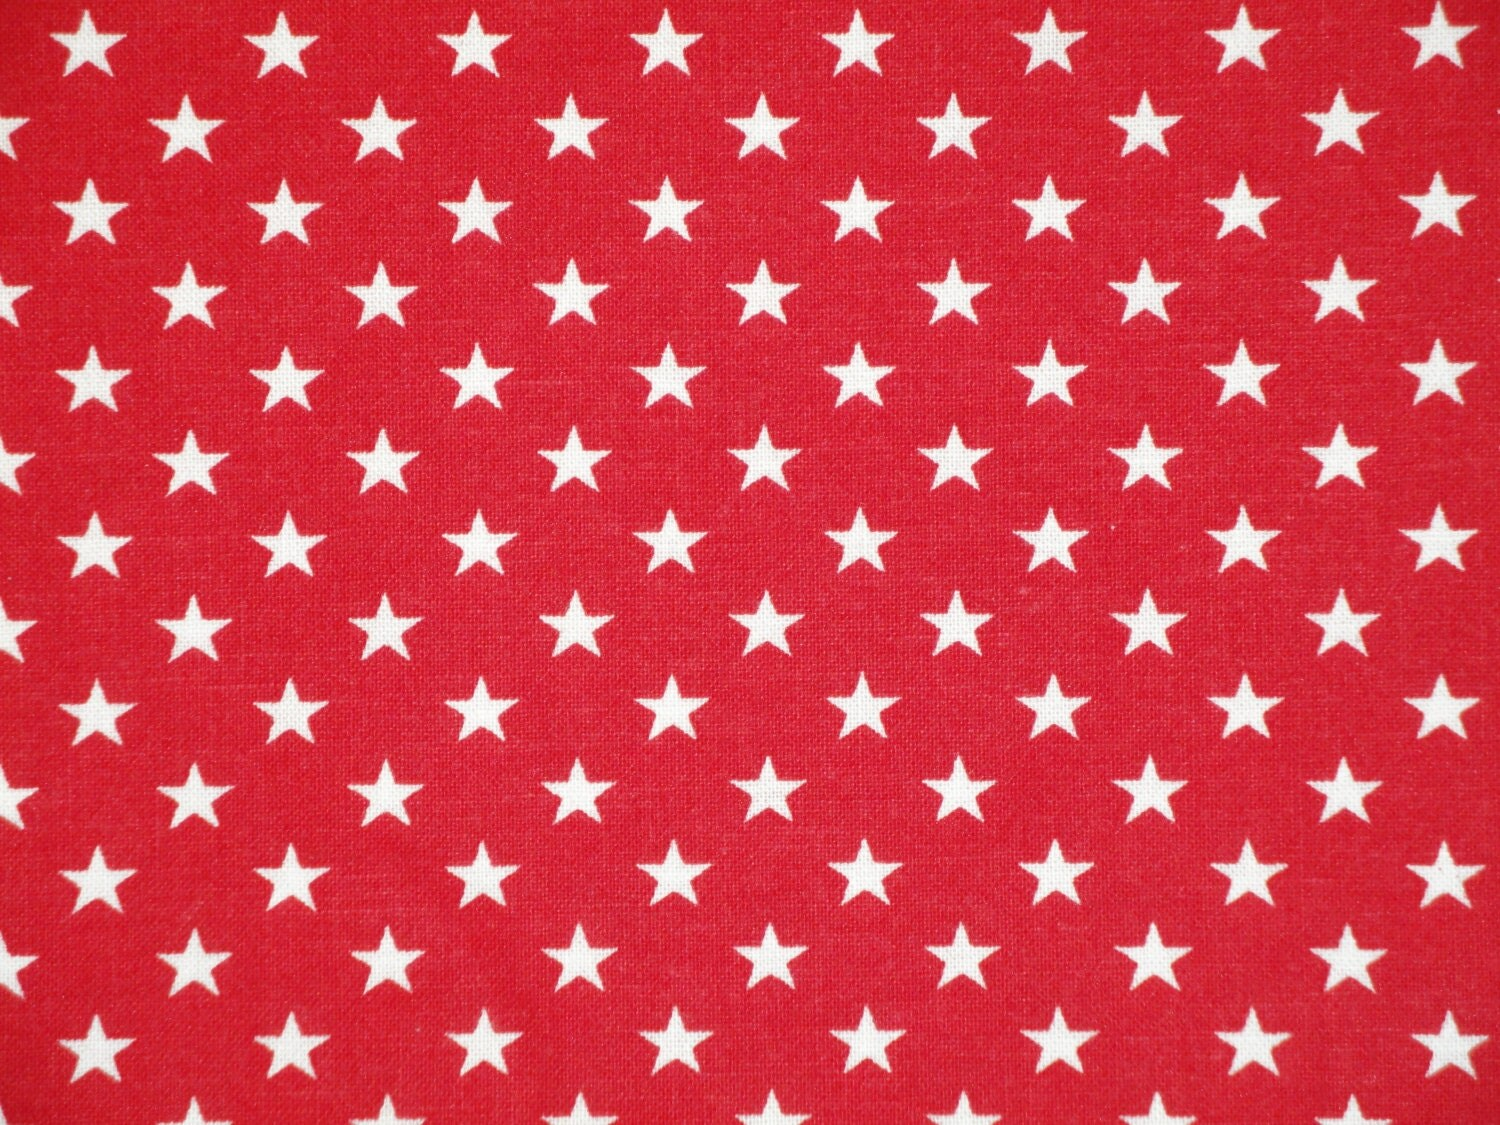 Star fabric cotton fabric home decor fabric quilt for Star fabric australia